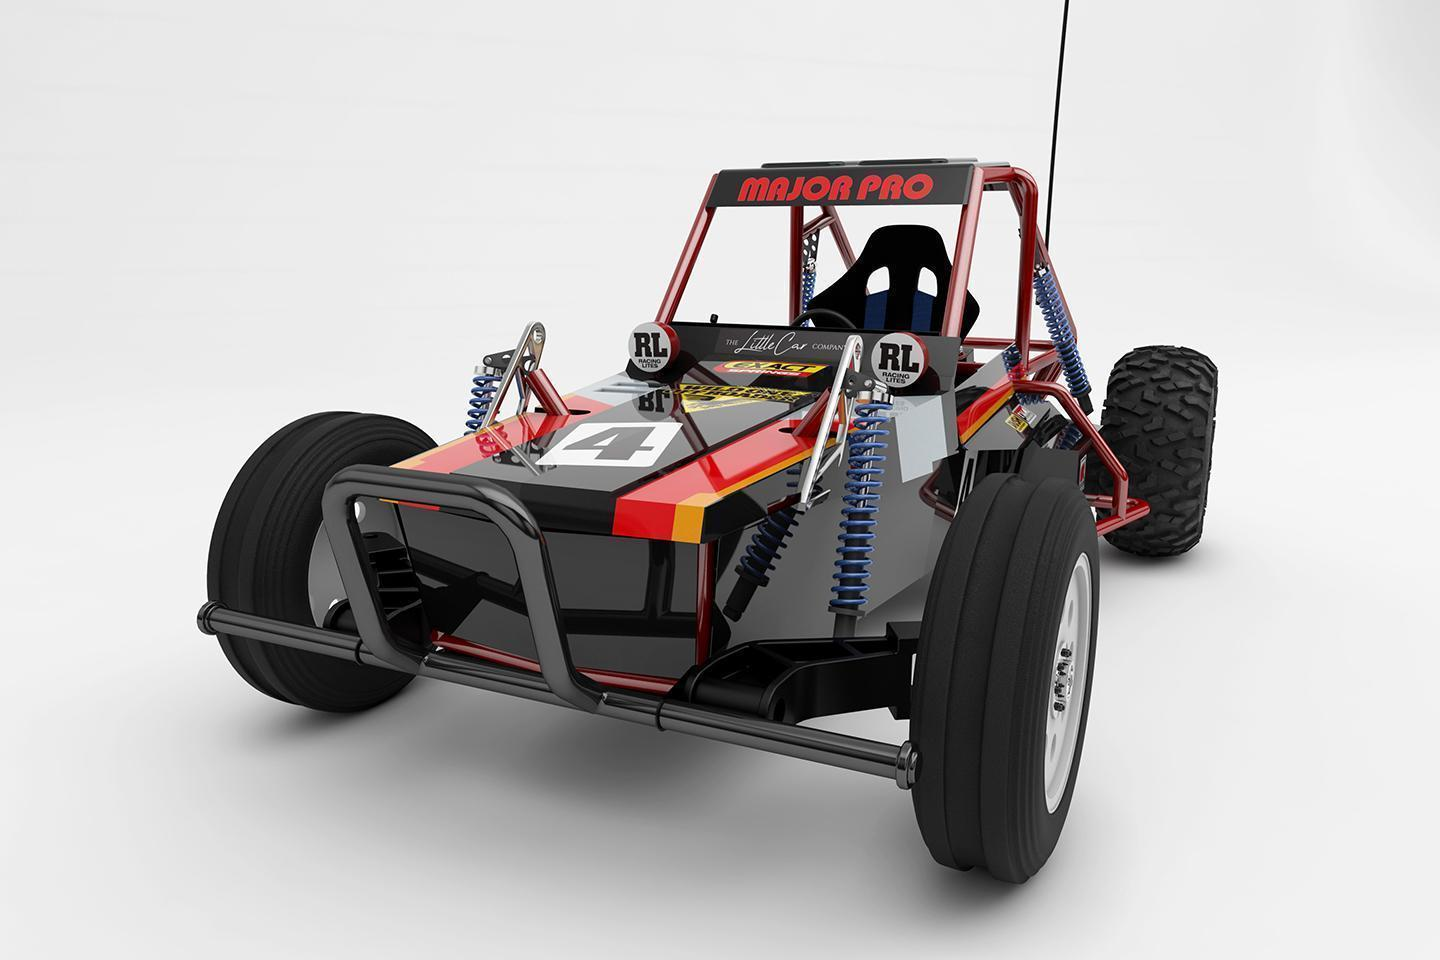 Re Little Car Company Tamiya Wild One Max Page 1 General Gassing Pistonheads Uk [ 960 x 1440 Pixel ]